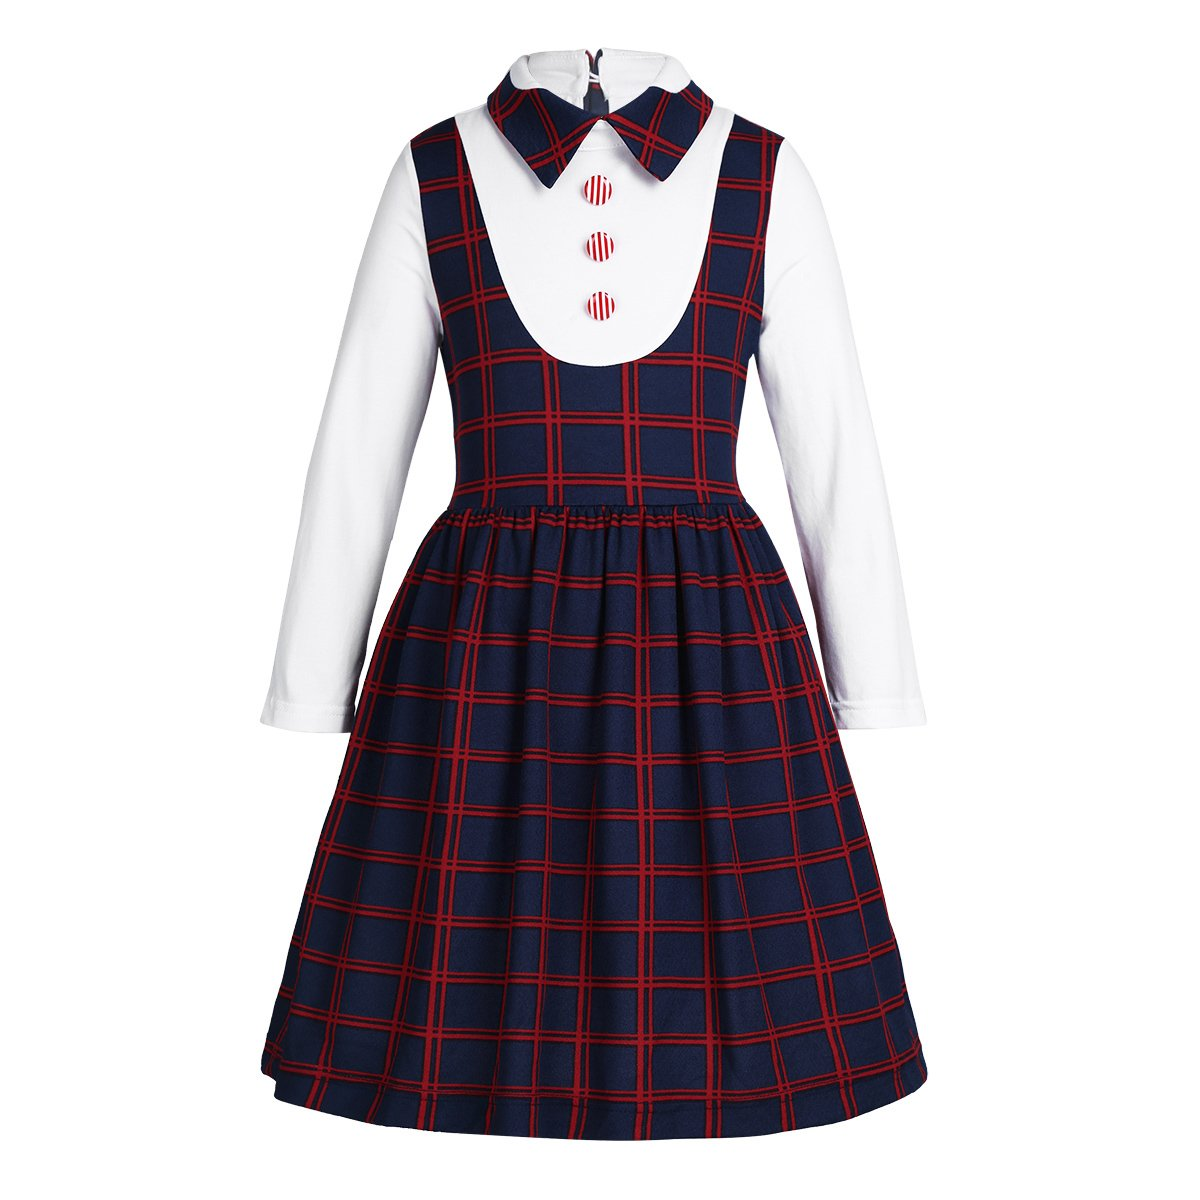 iEFiEL Kids Girls Dress School Uniform Long Sleeve Plaid Dress Birthday Party School Casual Navy Blue 6